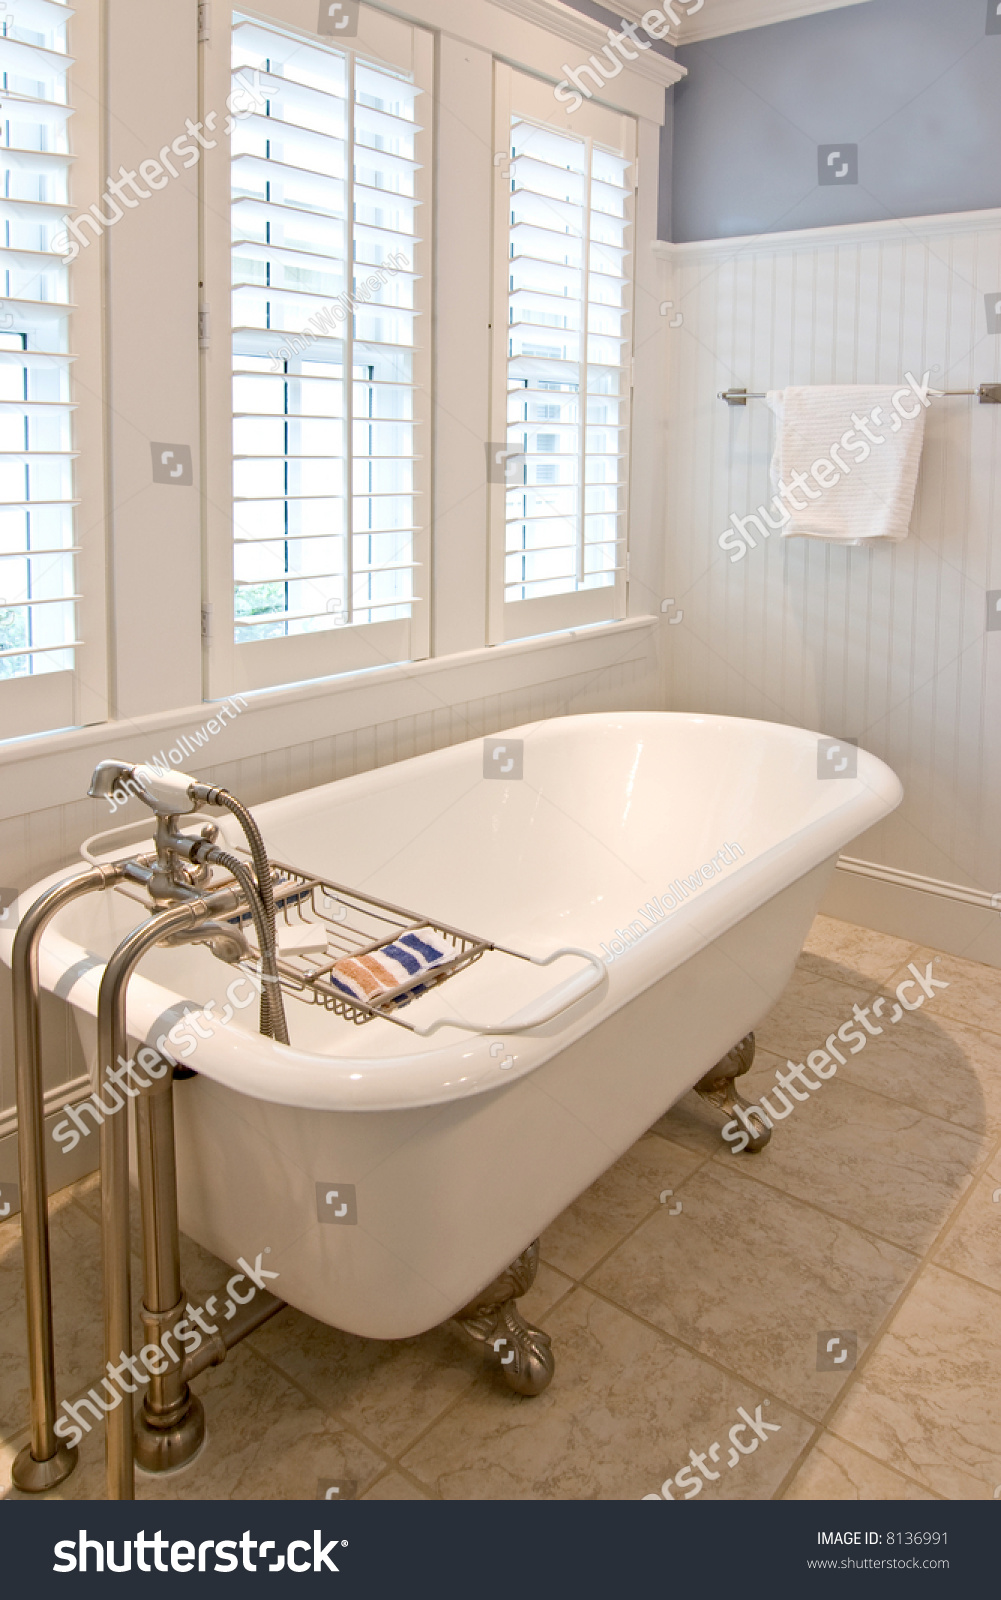 Classical Modern Bathroom With Clawfoot Tub Stock Photo 8136991 Shutterstock